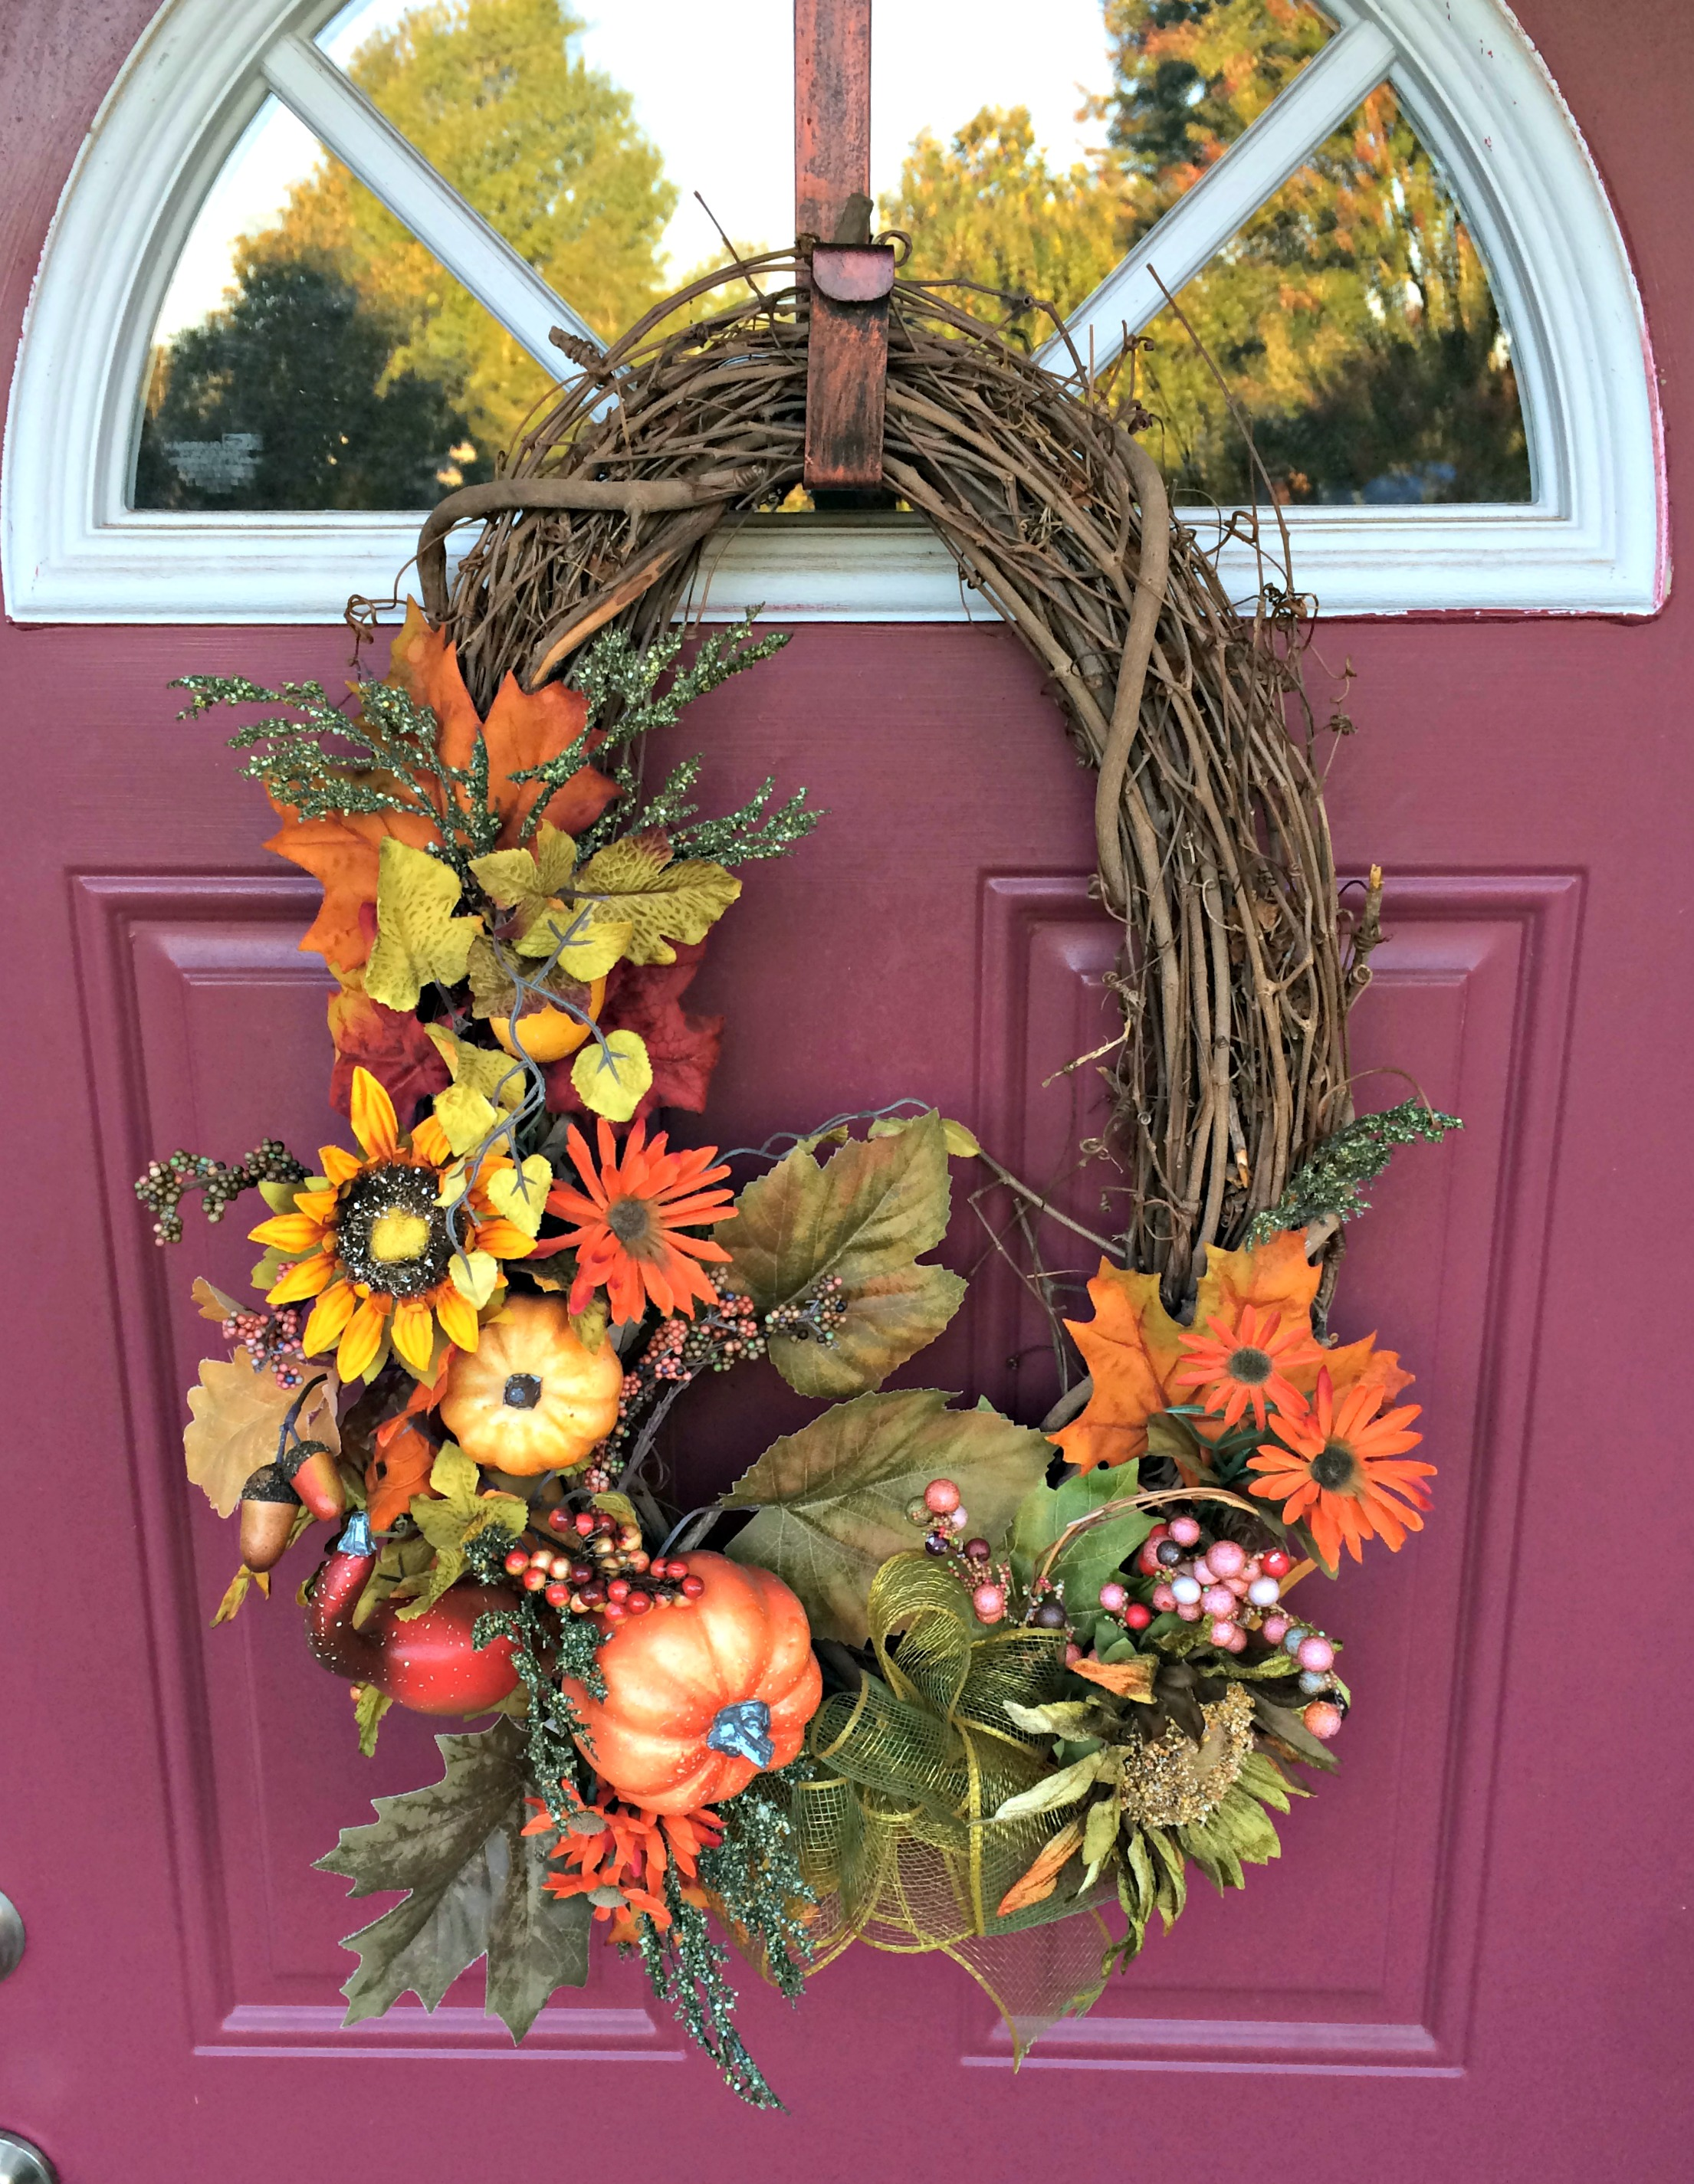 Fall on the outside vlogtober come home for comfort for Fall decorations for outside the home